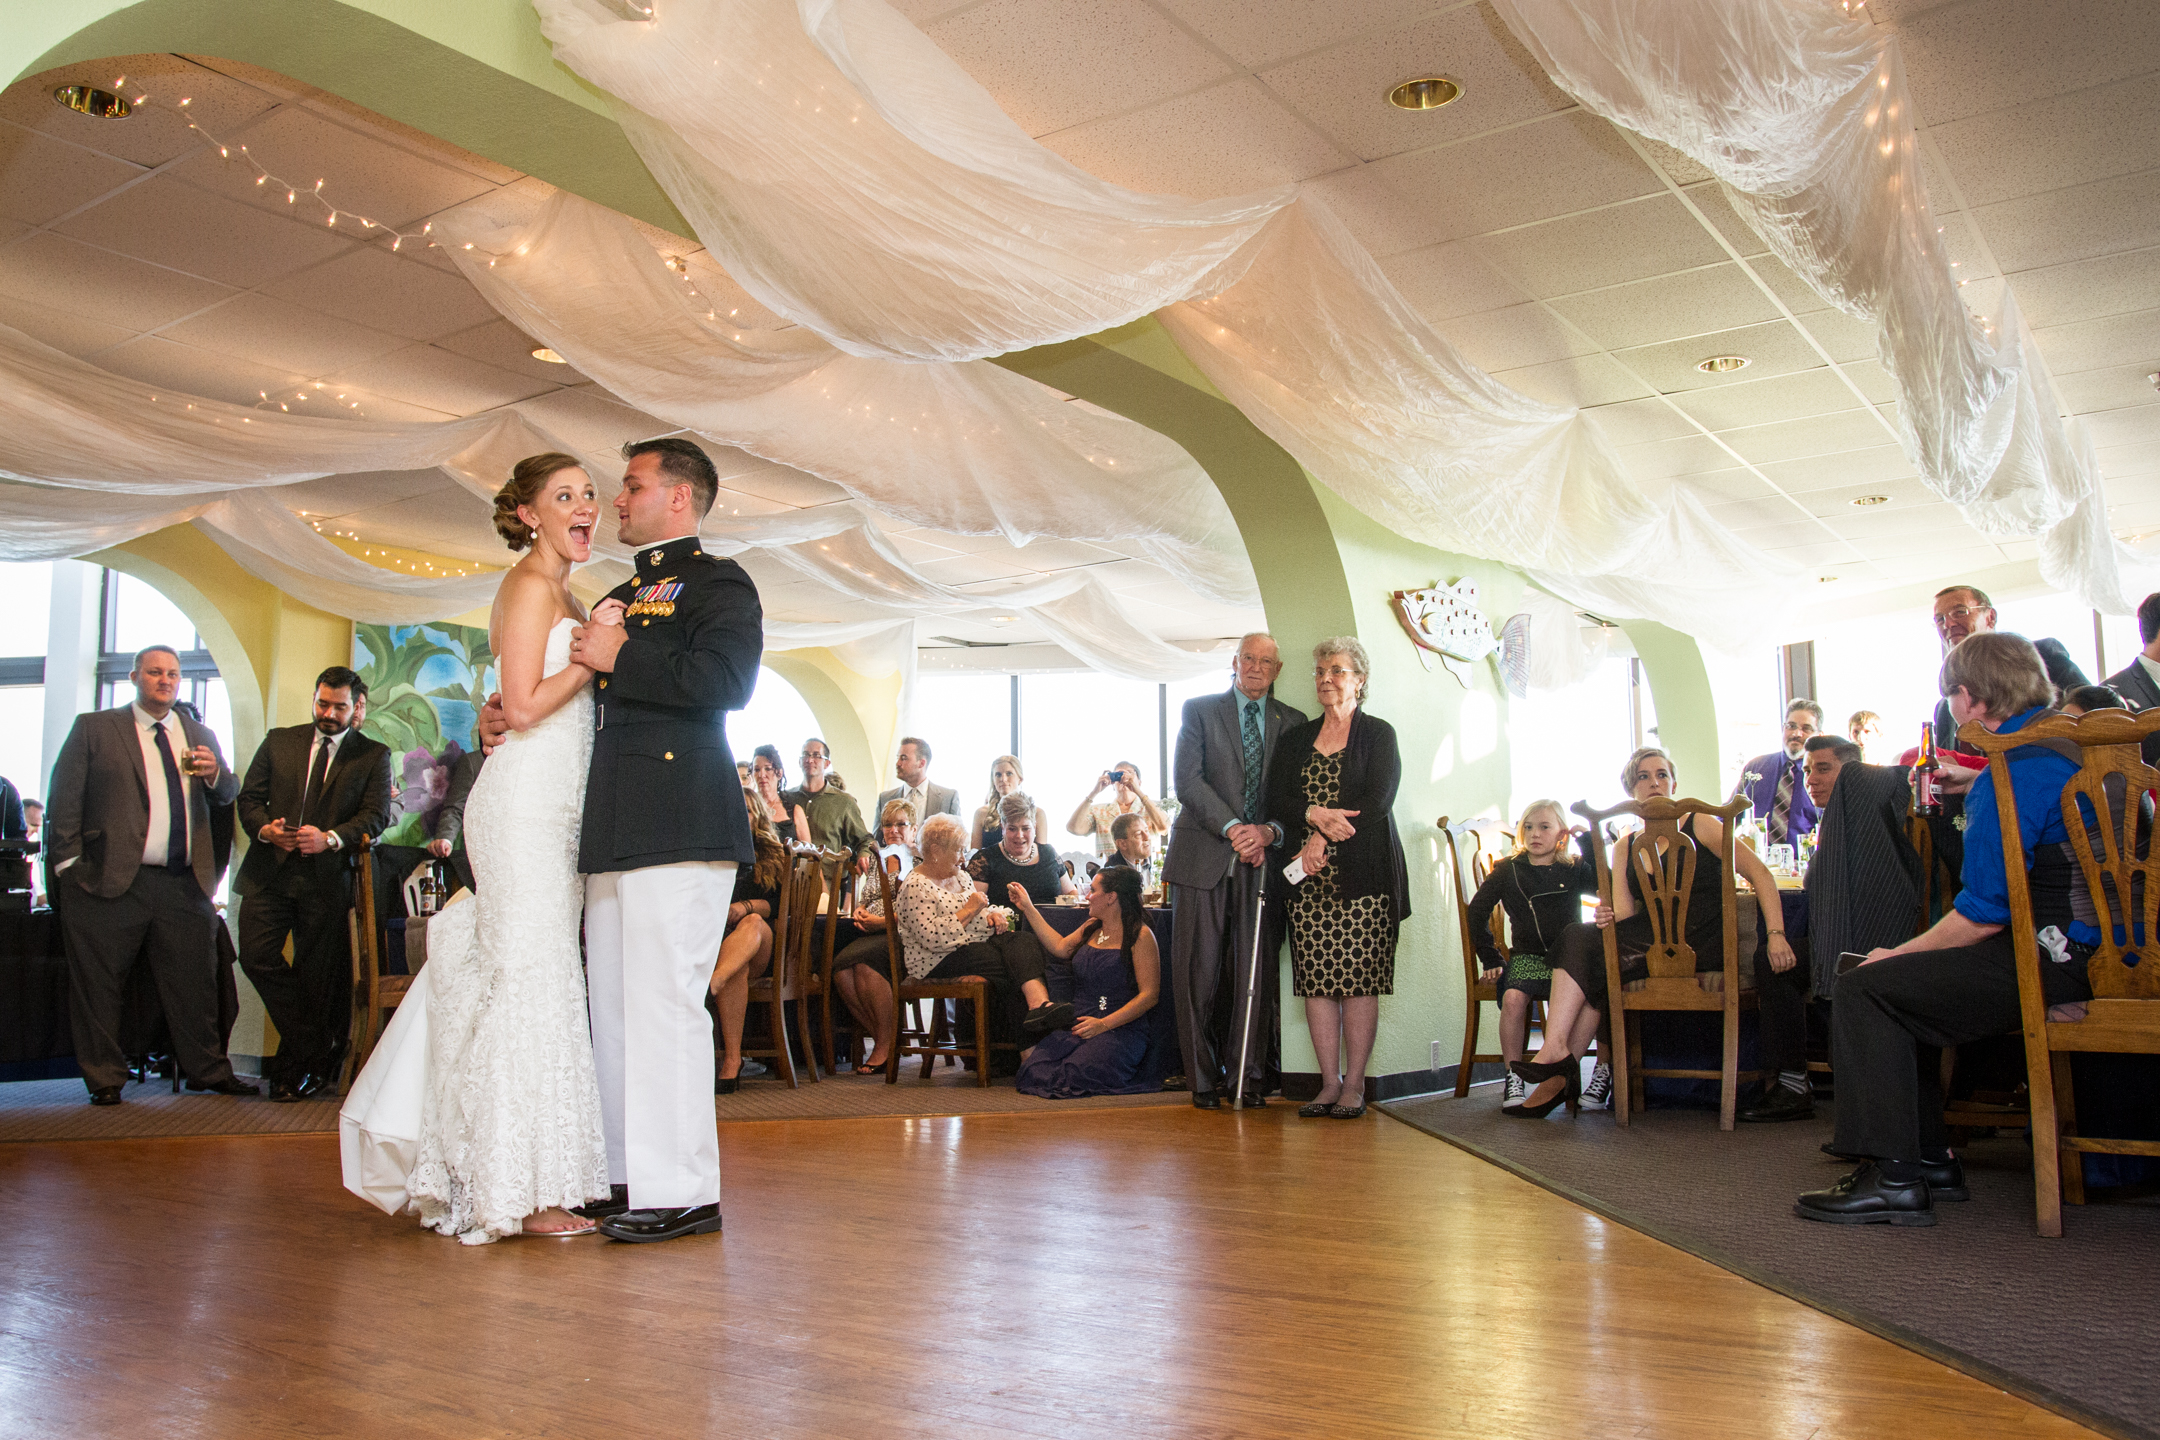 20151114_Stefanski_Wedding_MGM_0017.jpg